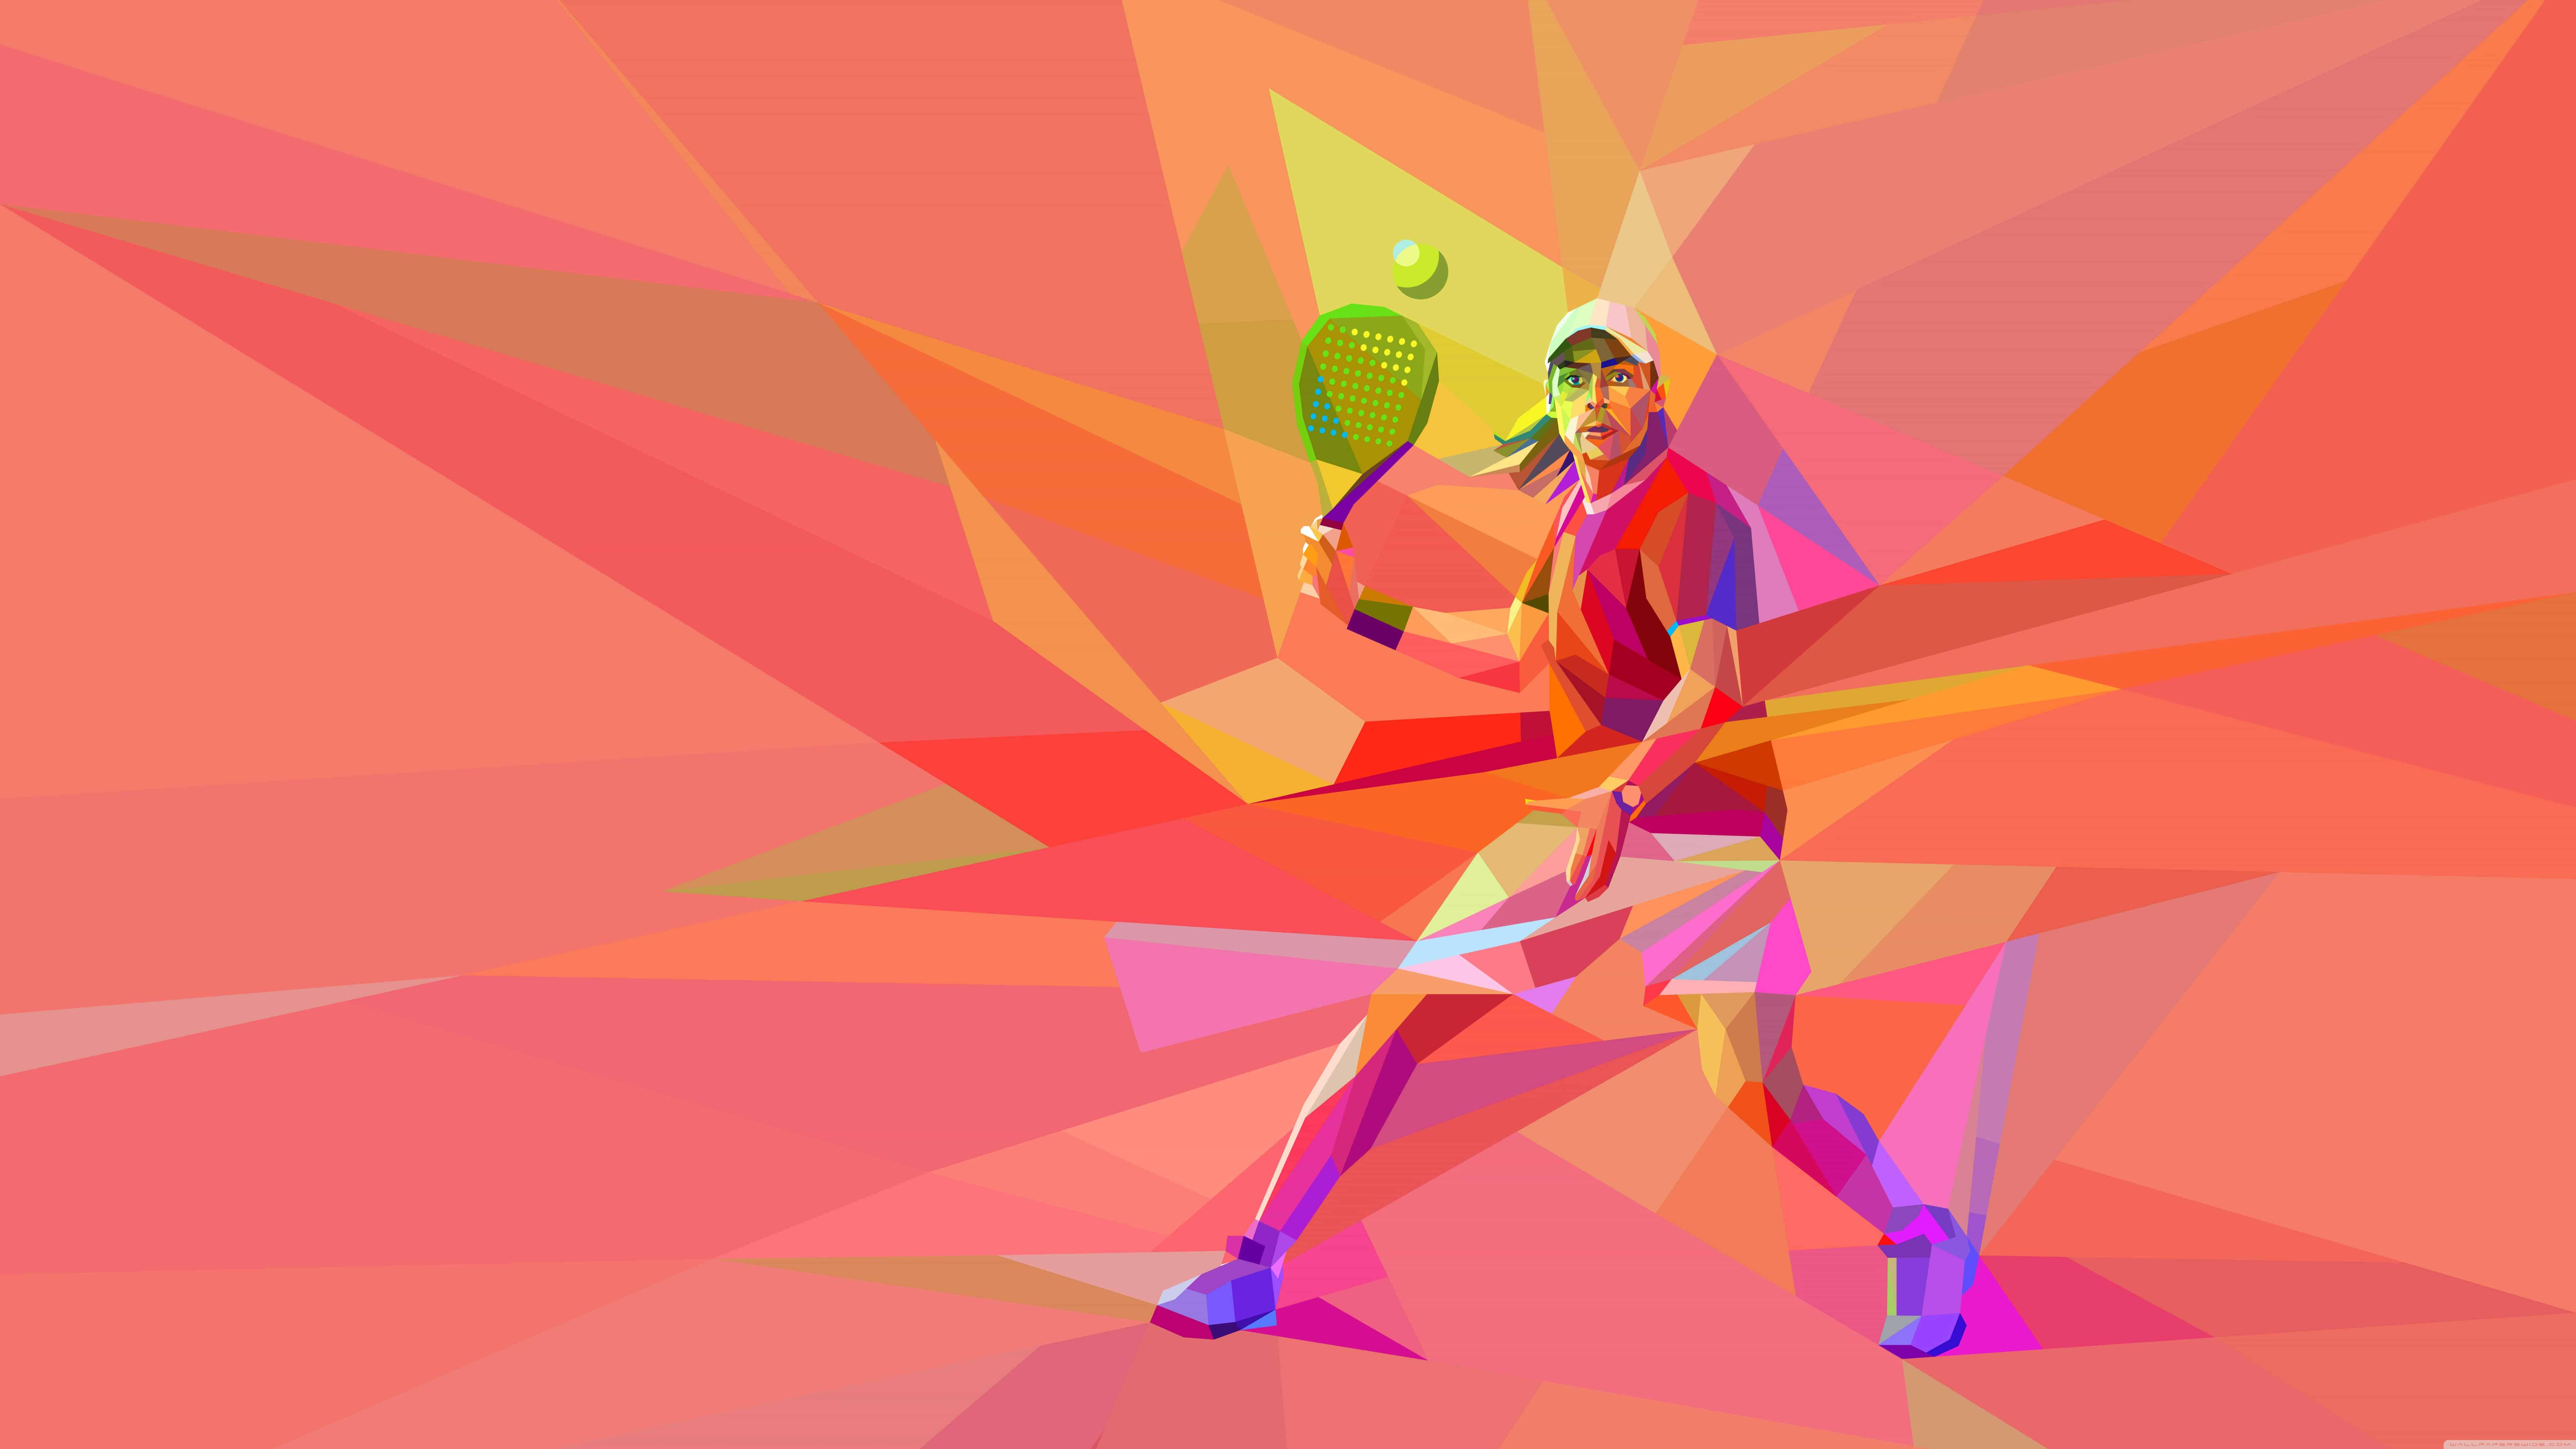 tennis player female uhd 8k wallpaper